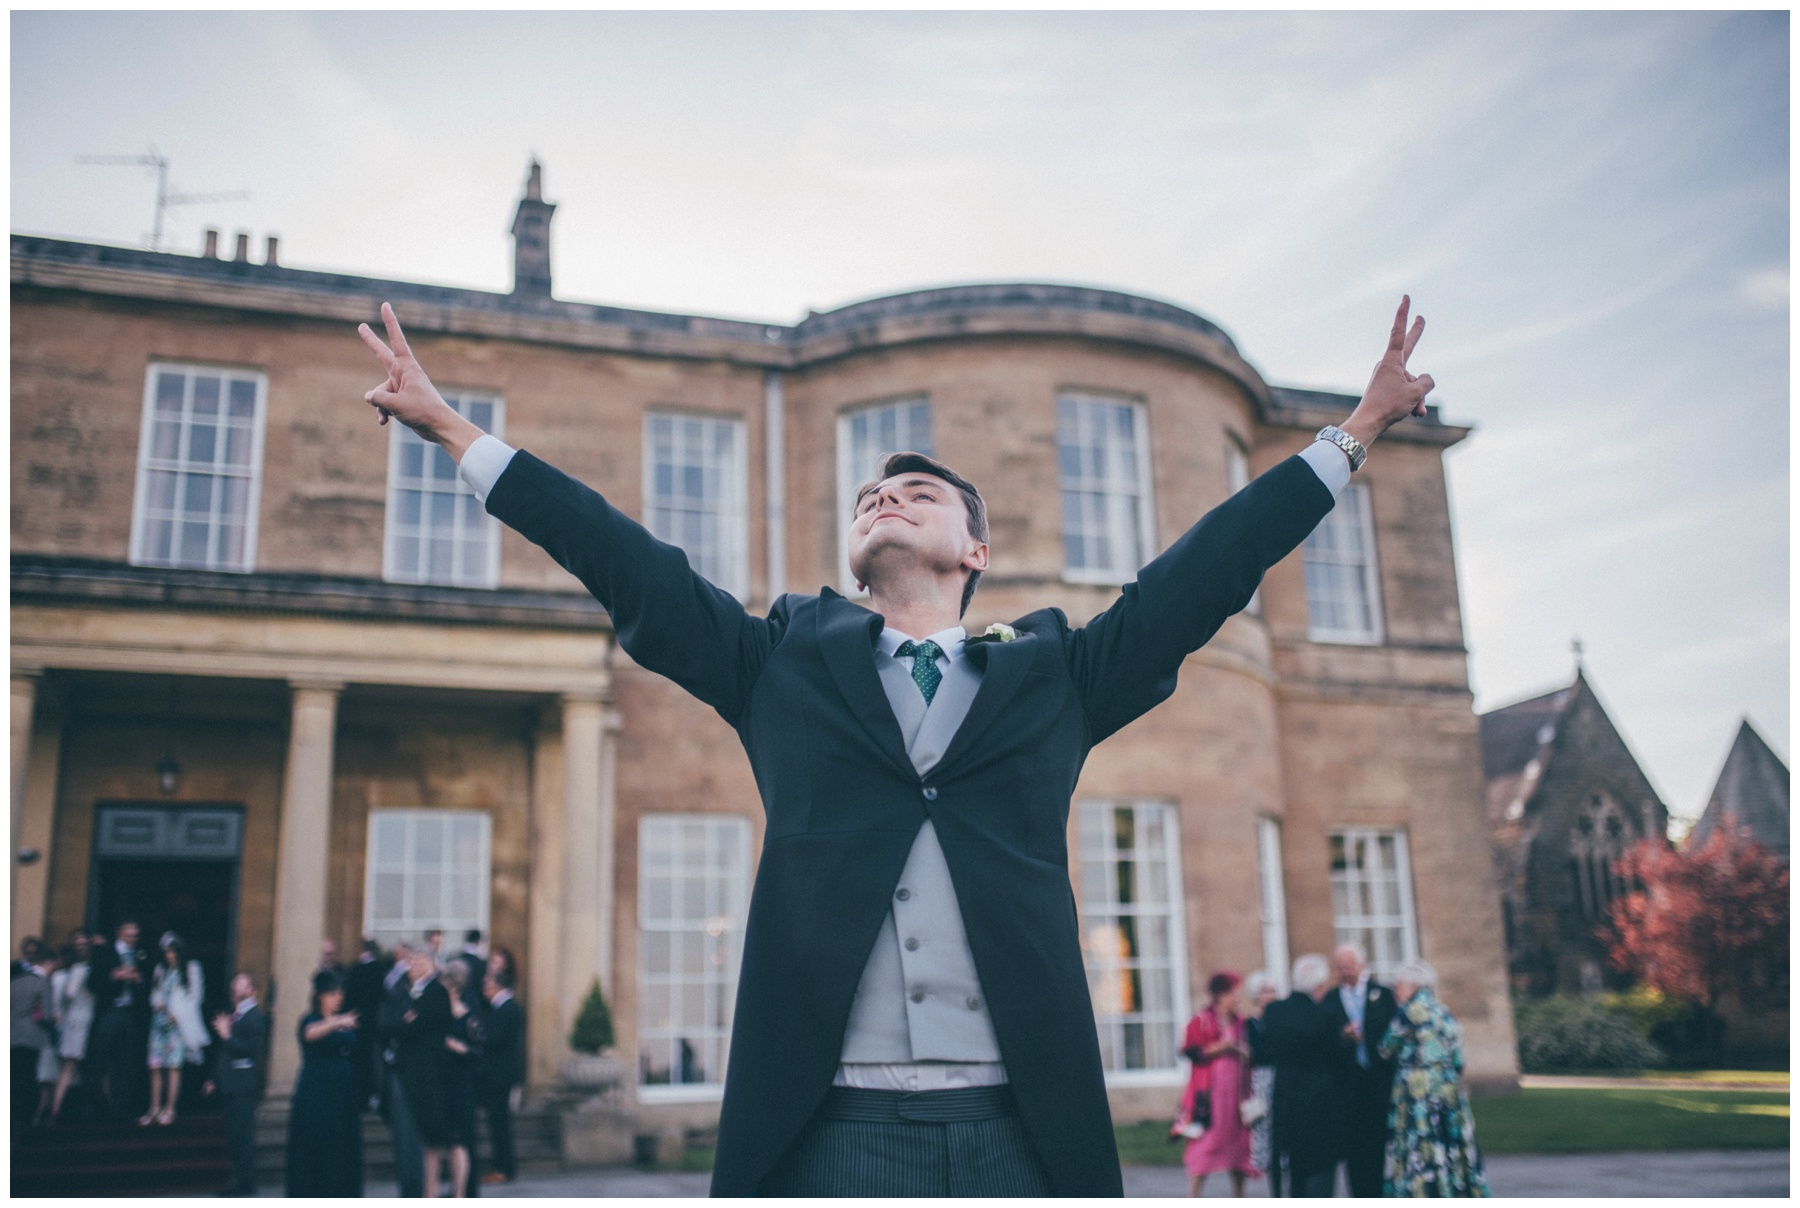 Groomsman celebrates the wedding at Rudding Park hotel.